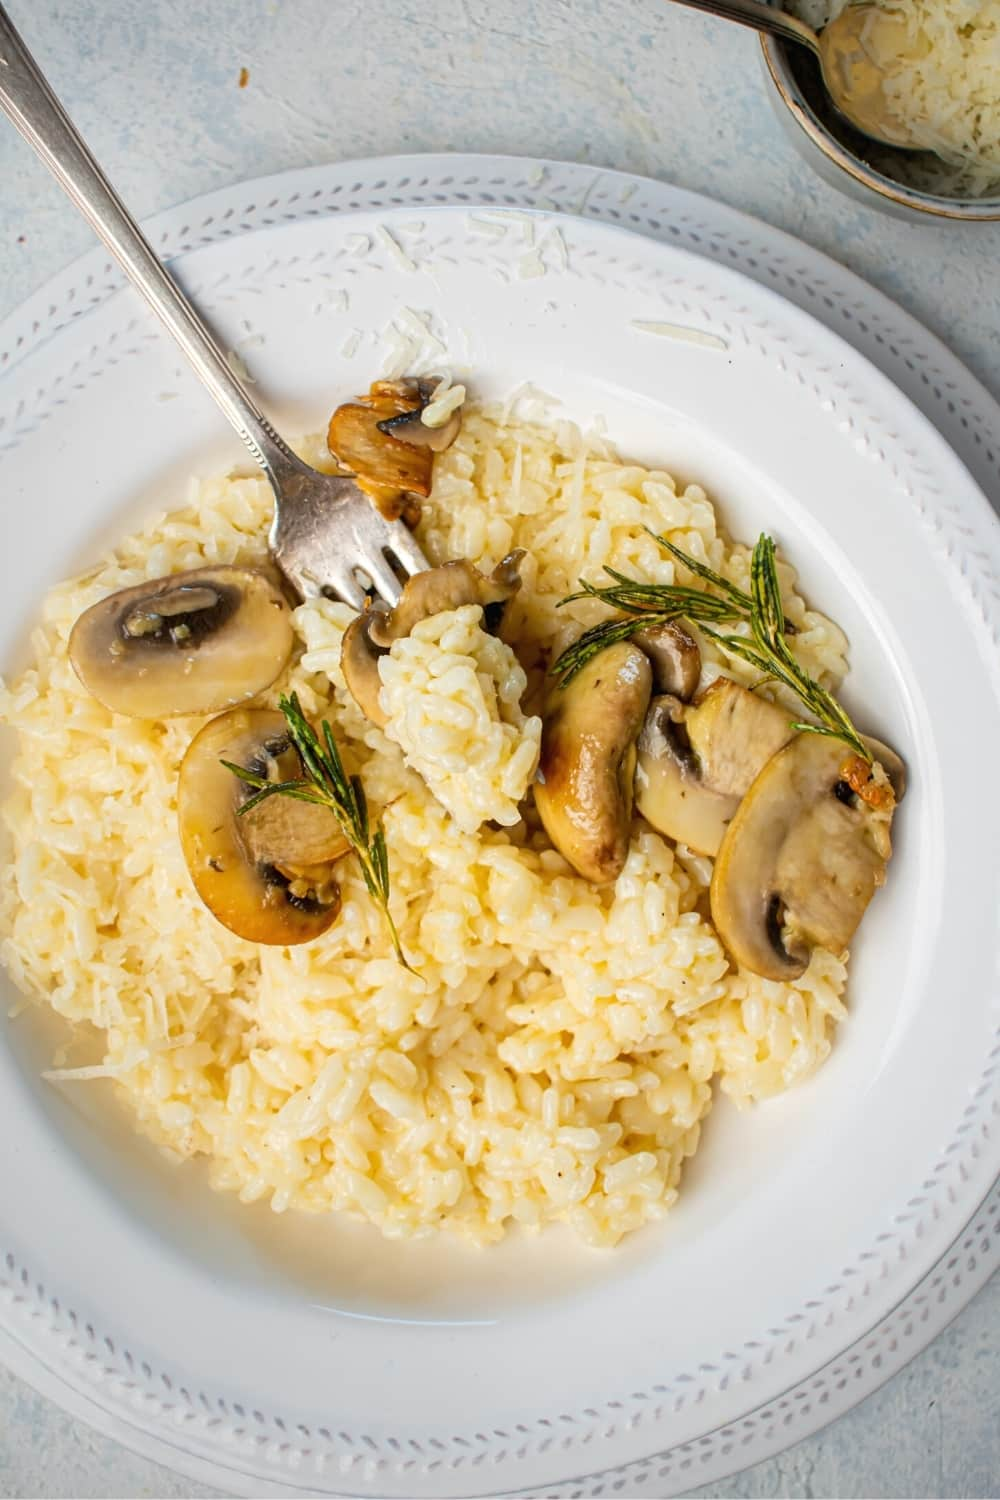 White bowl filled with mushrooms Odo with a fork sticking a piece of mushroom and some risotto in it.